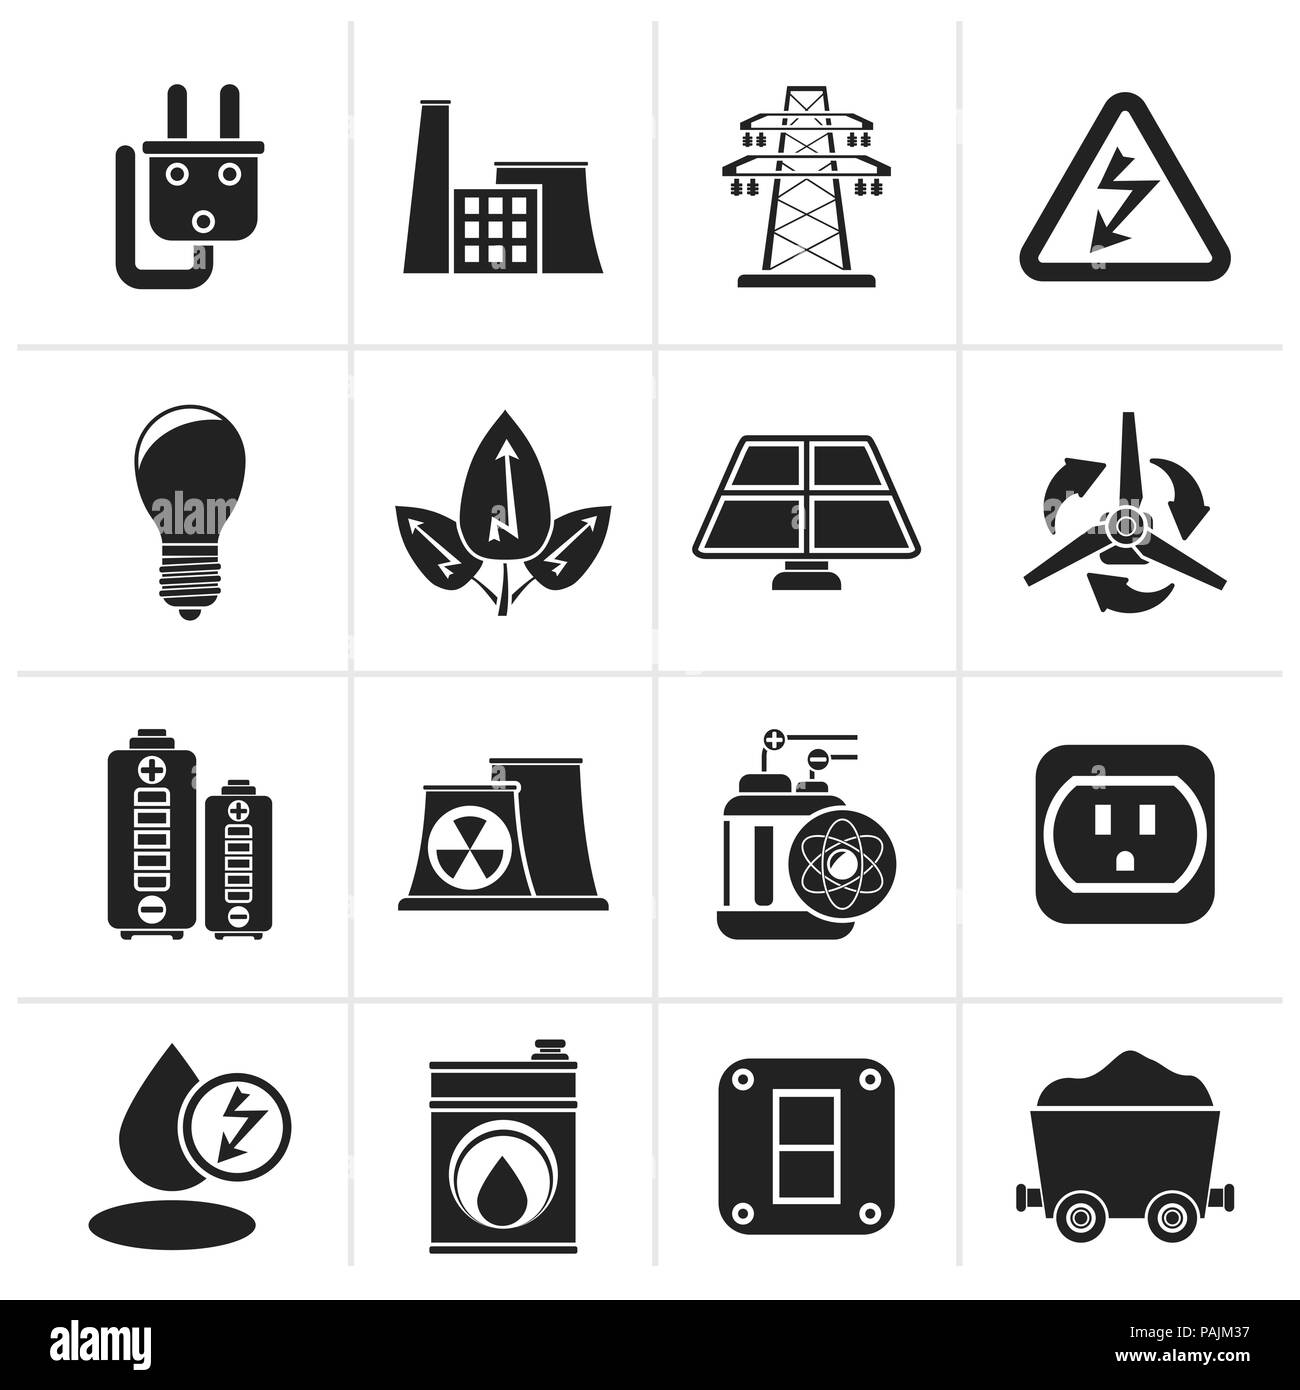 Black power, energy and electricity icons - vector icon set - Stock Image